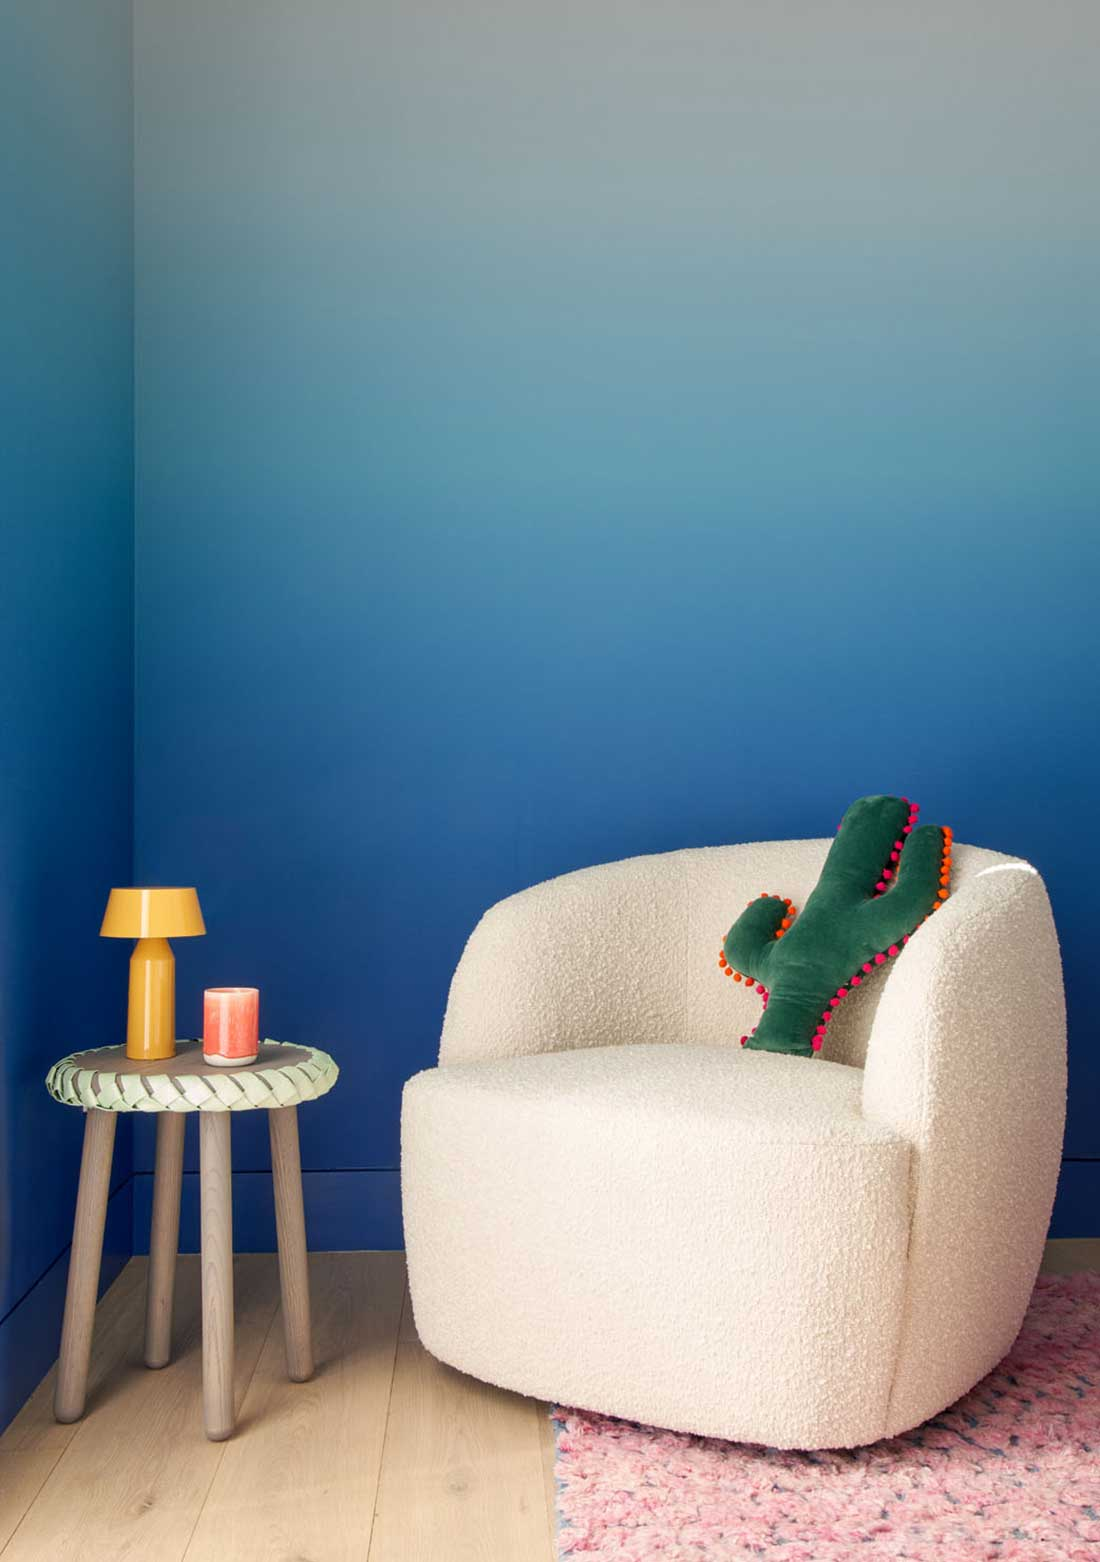 Alison Damonte Elevated Mood - chair and table